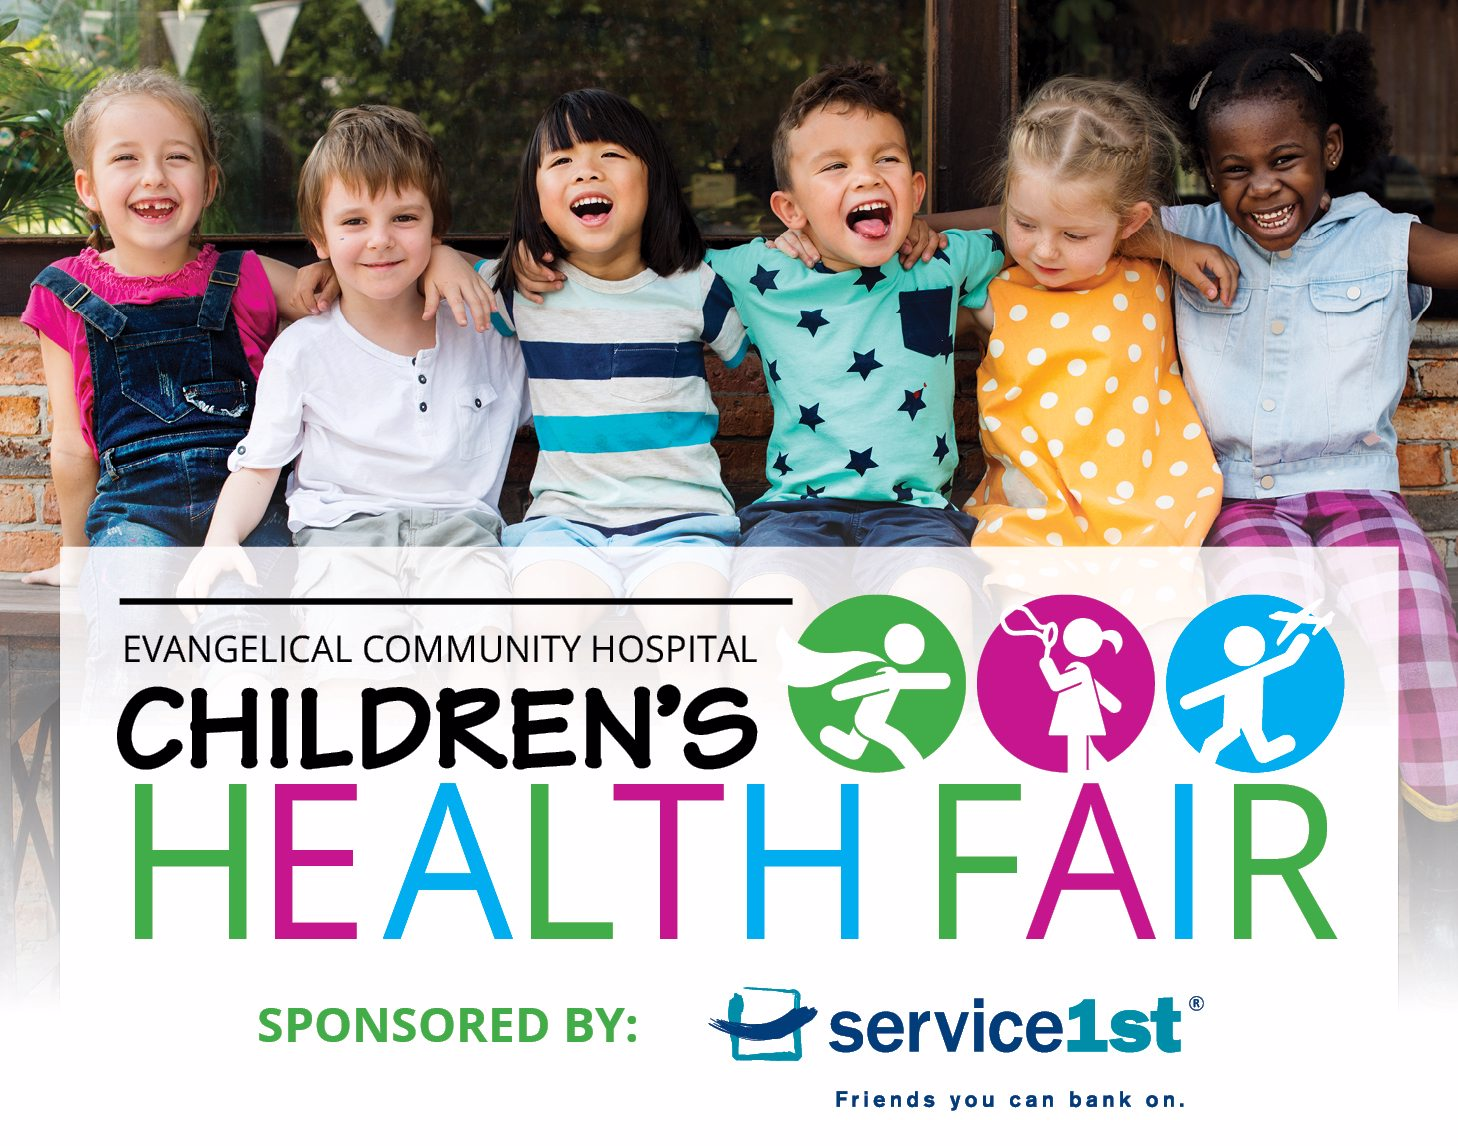 Evangelical Community Hospital Celebrates Healthy Kids at Children's Health Fair 2020